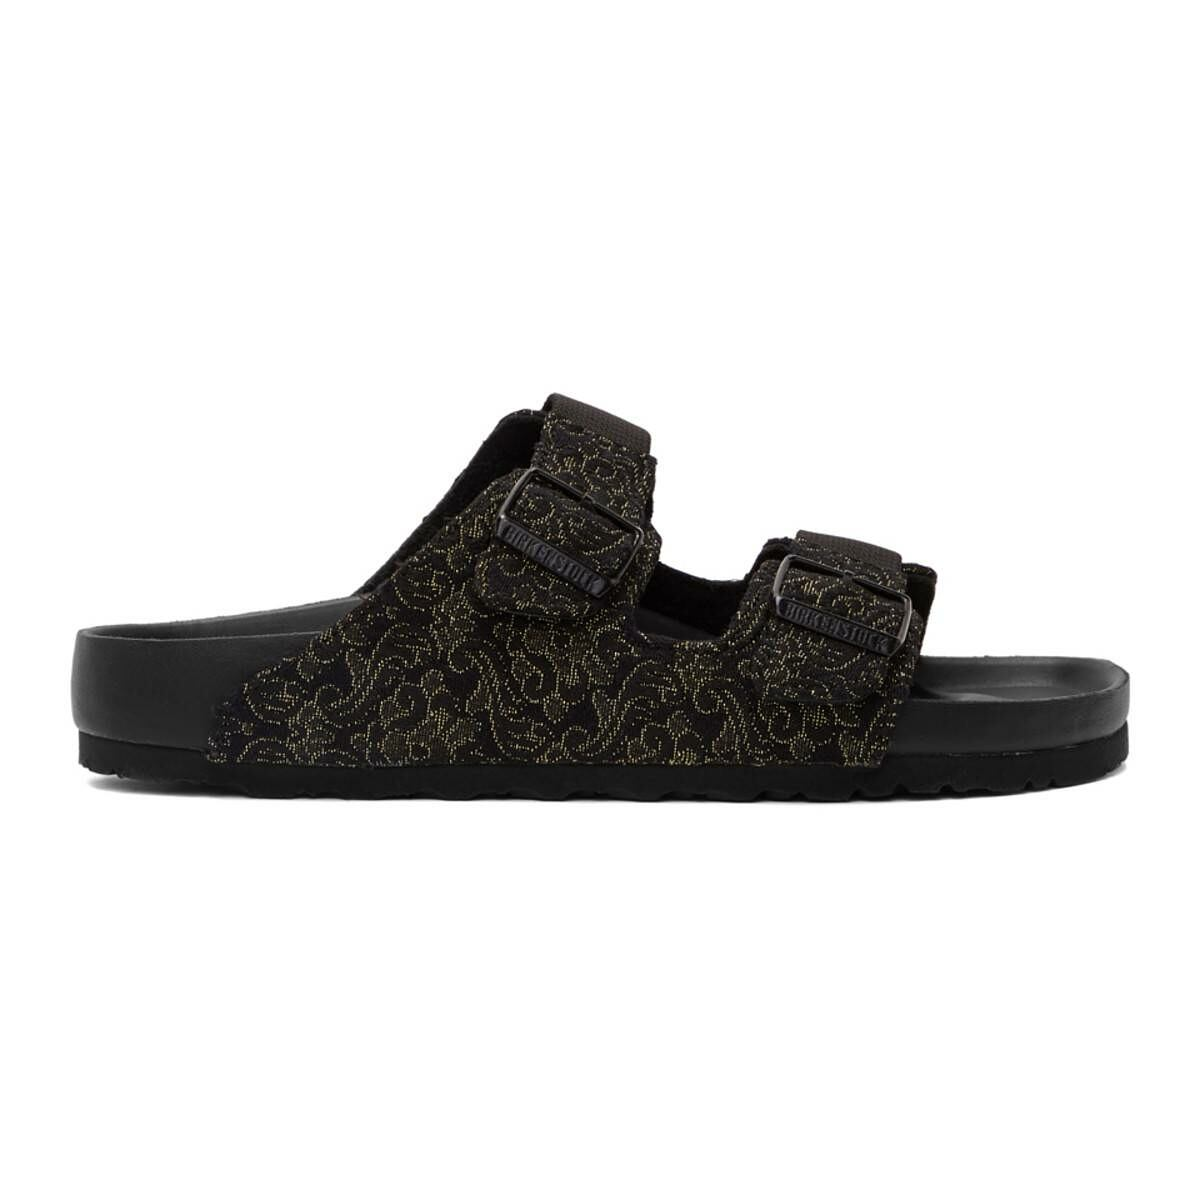 Random Identities Black and Gold Birkenstock Edition Jacquard Arizona Sandals Ssense USA MEN Men SHOES Mens SANDALS